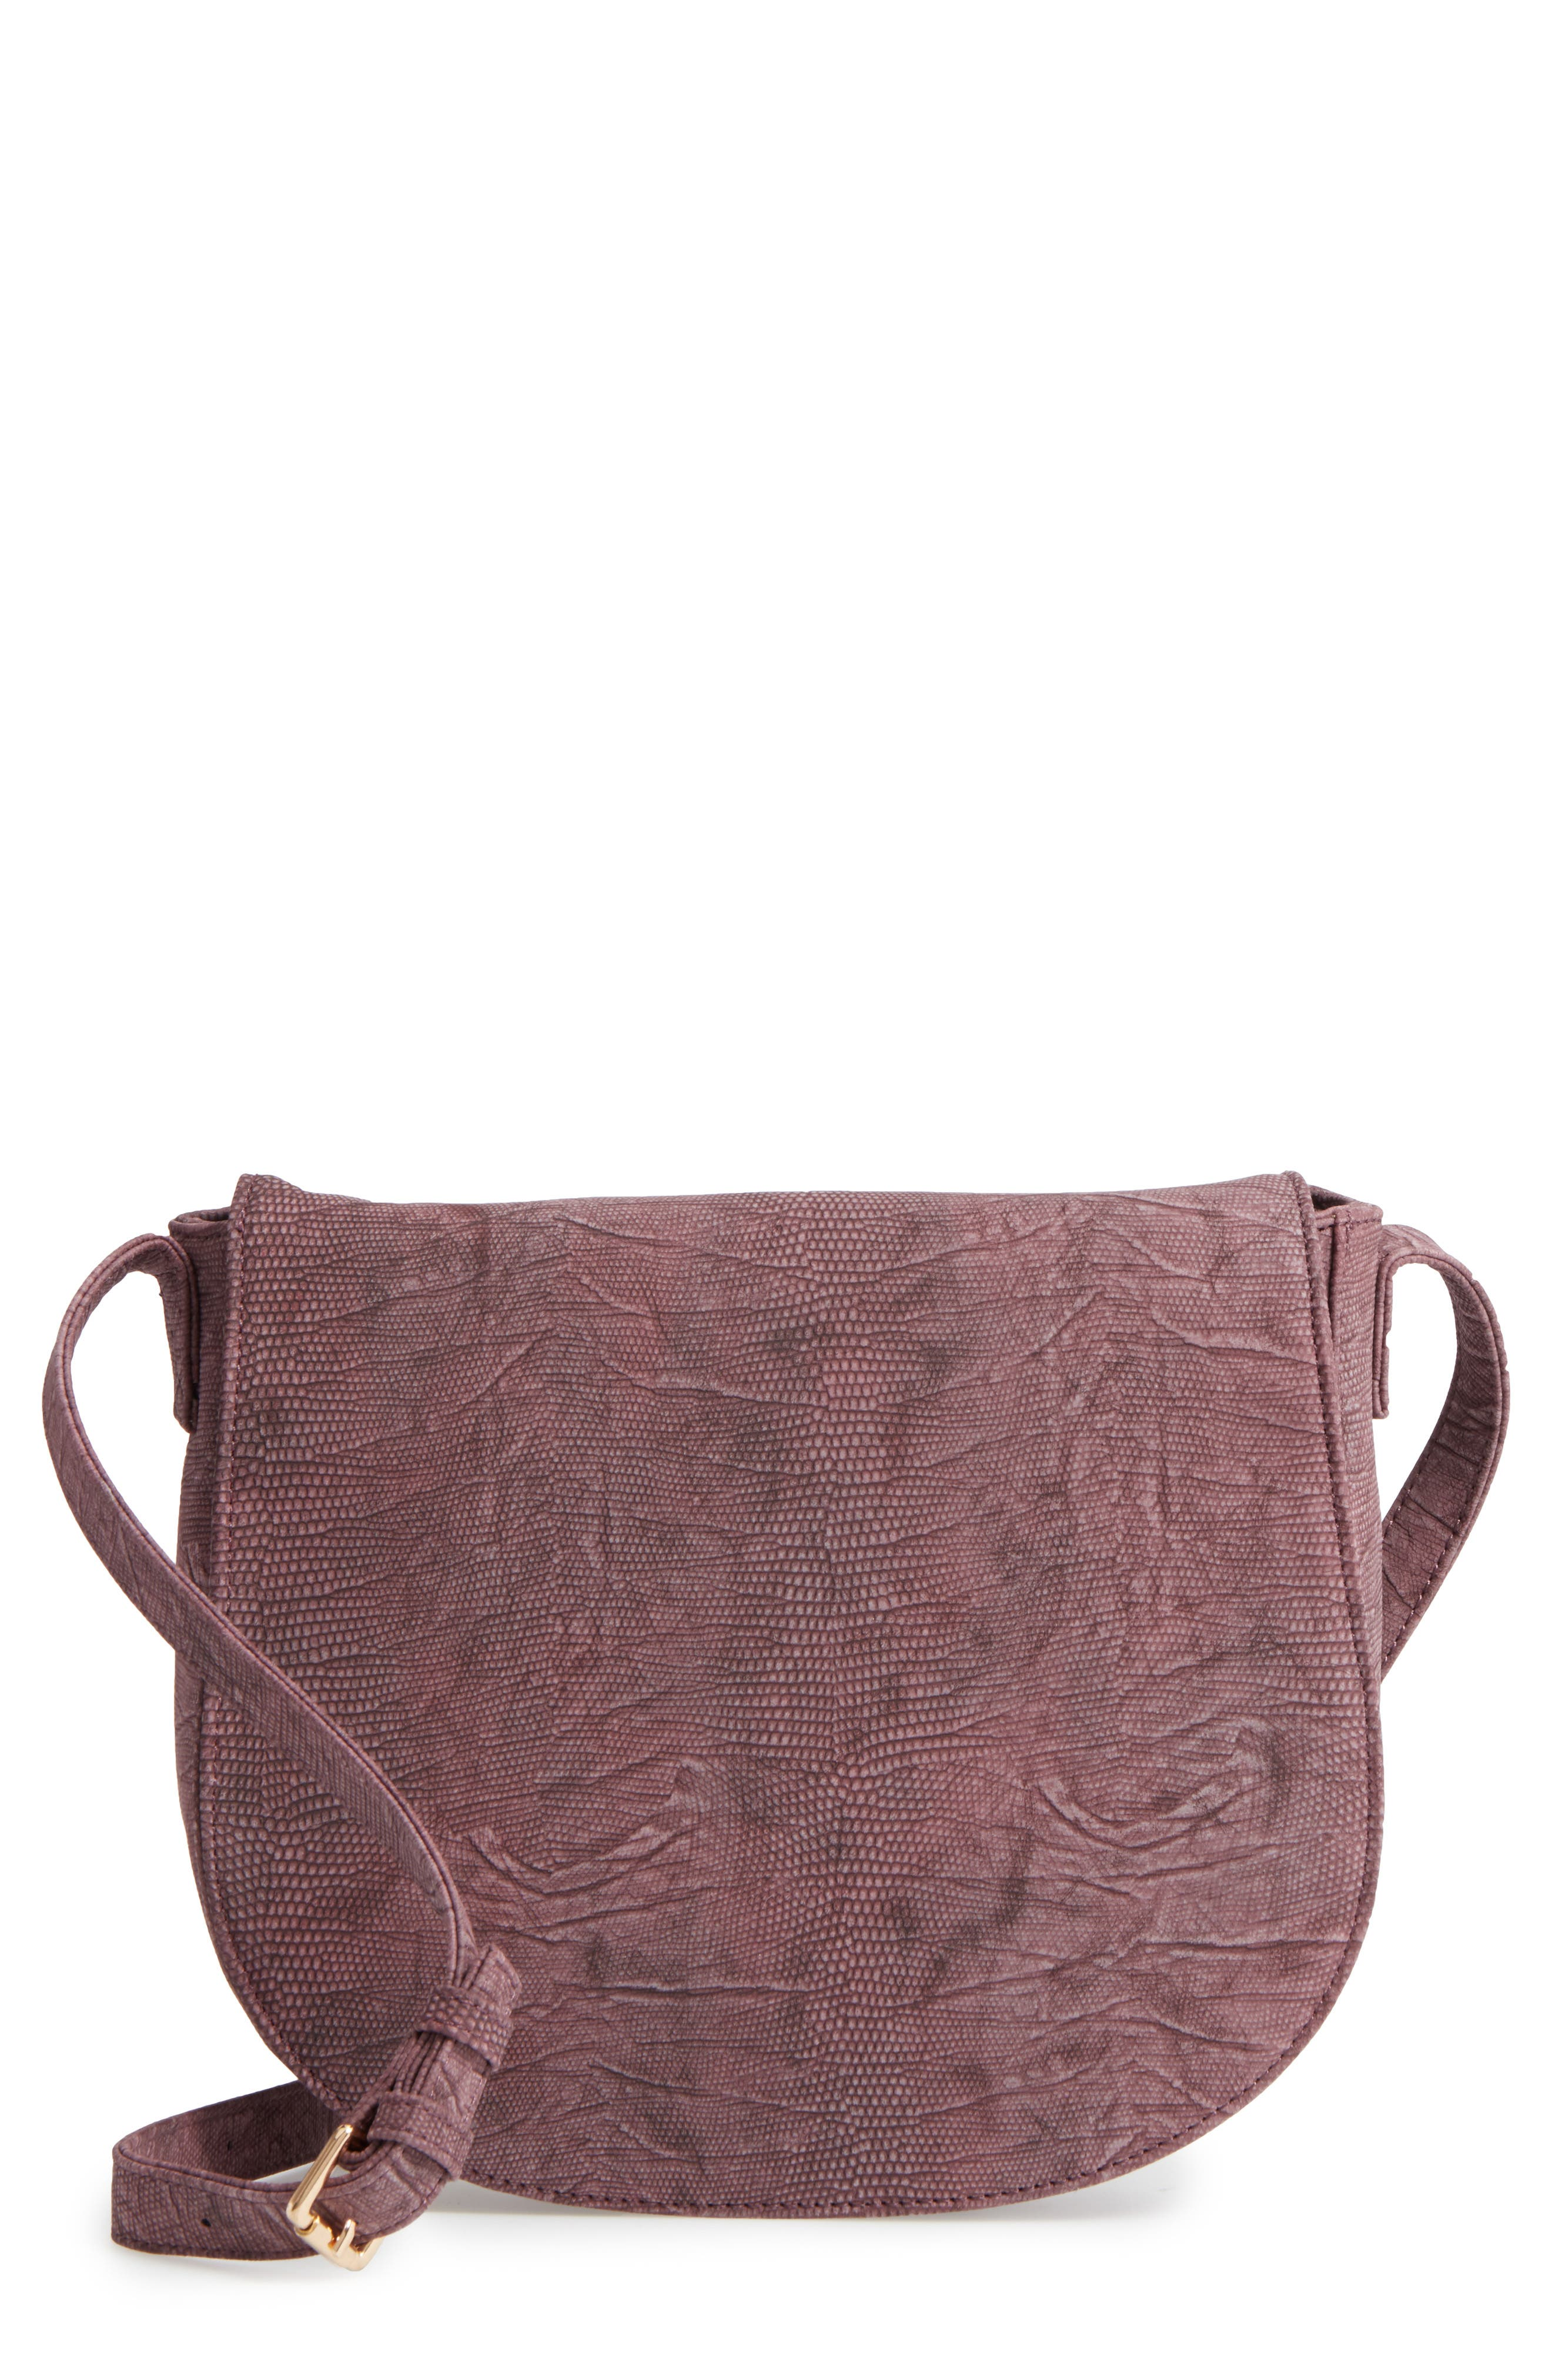 ,                             Livvy Faux Leather Crossbody Saddle Bag,                             Main thumbnail 13, color,                             600